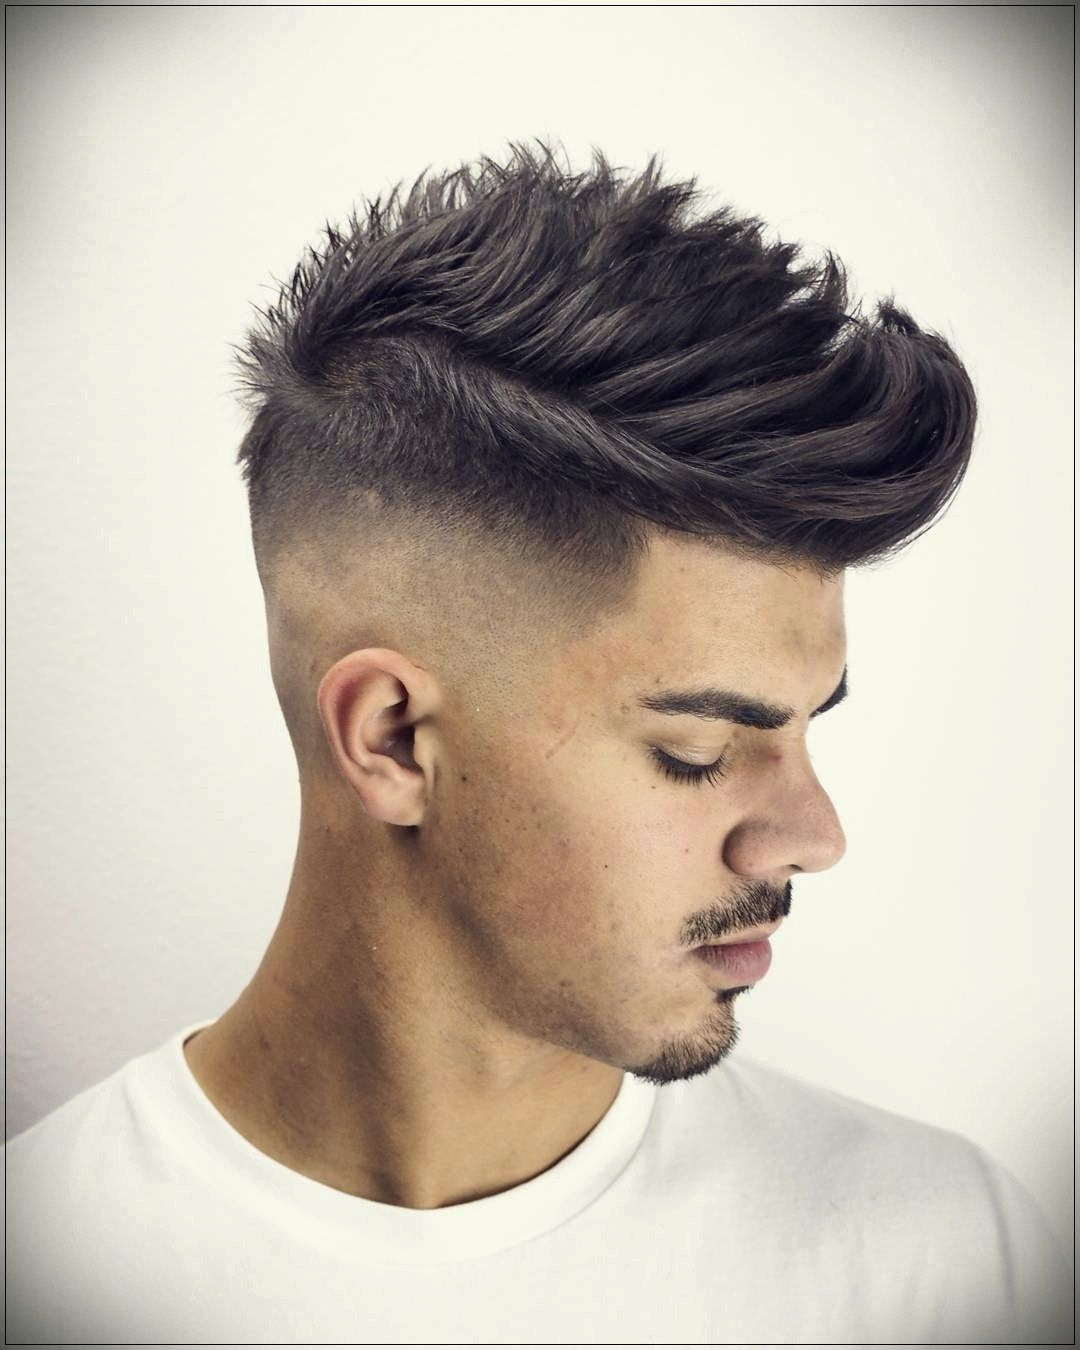 Haircuts for thin hair men sport these short haircuts for men in   hairstyles  pinterest